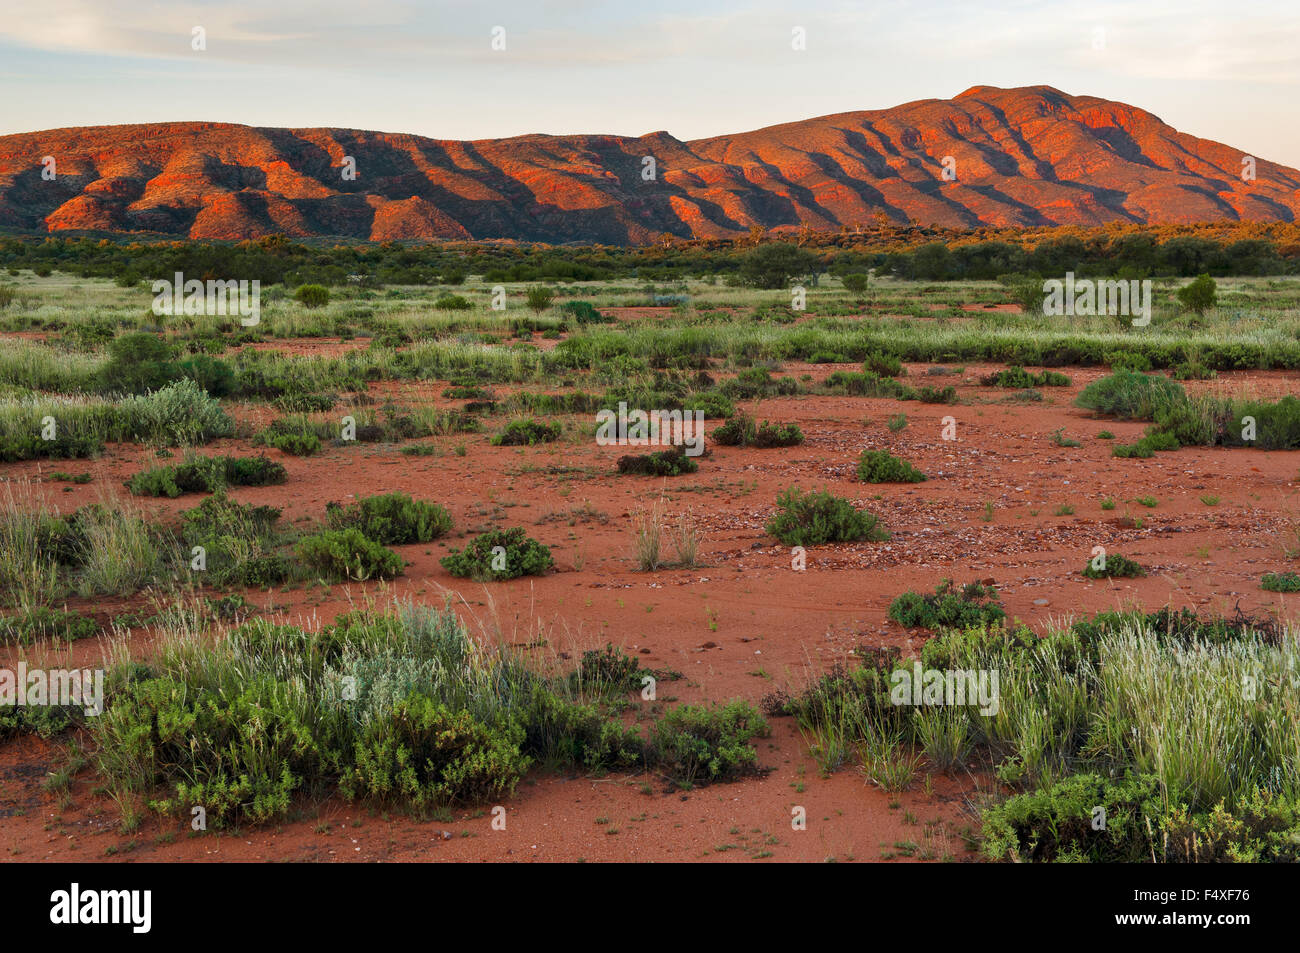 Western MacDonnell Ranges in evening light. - Stock Image